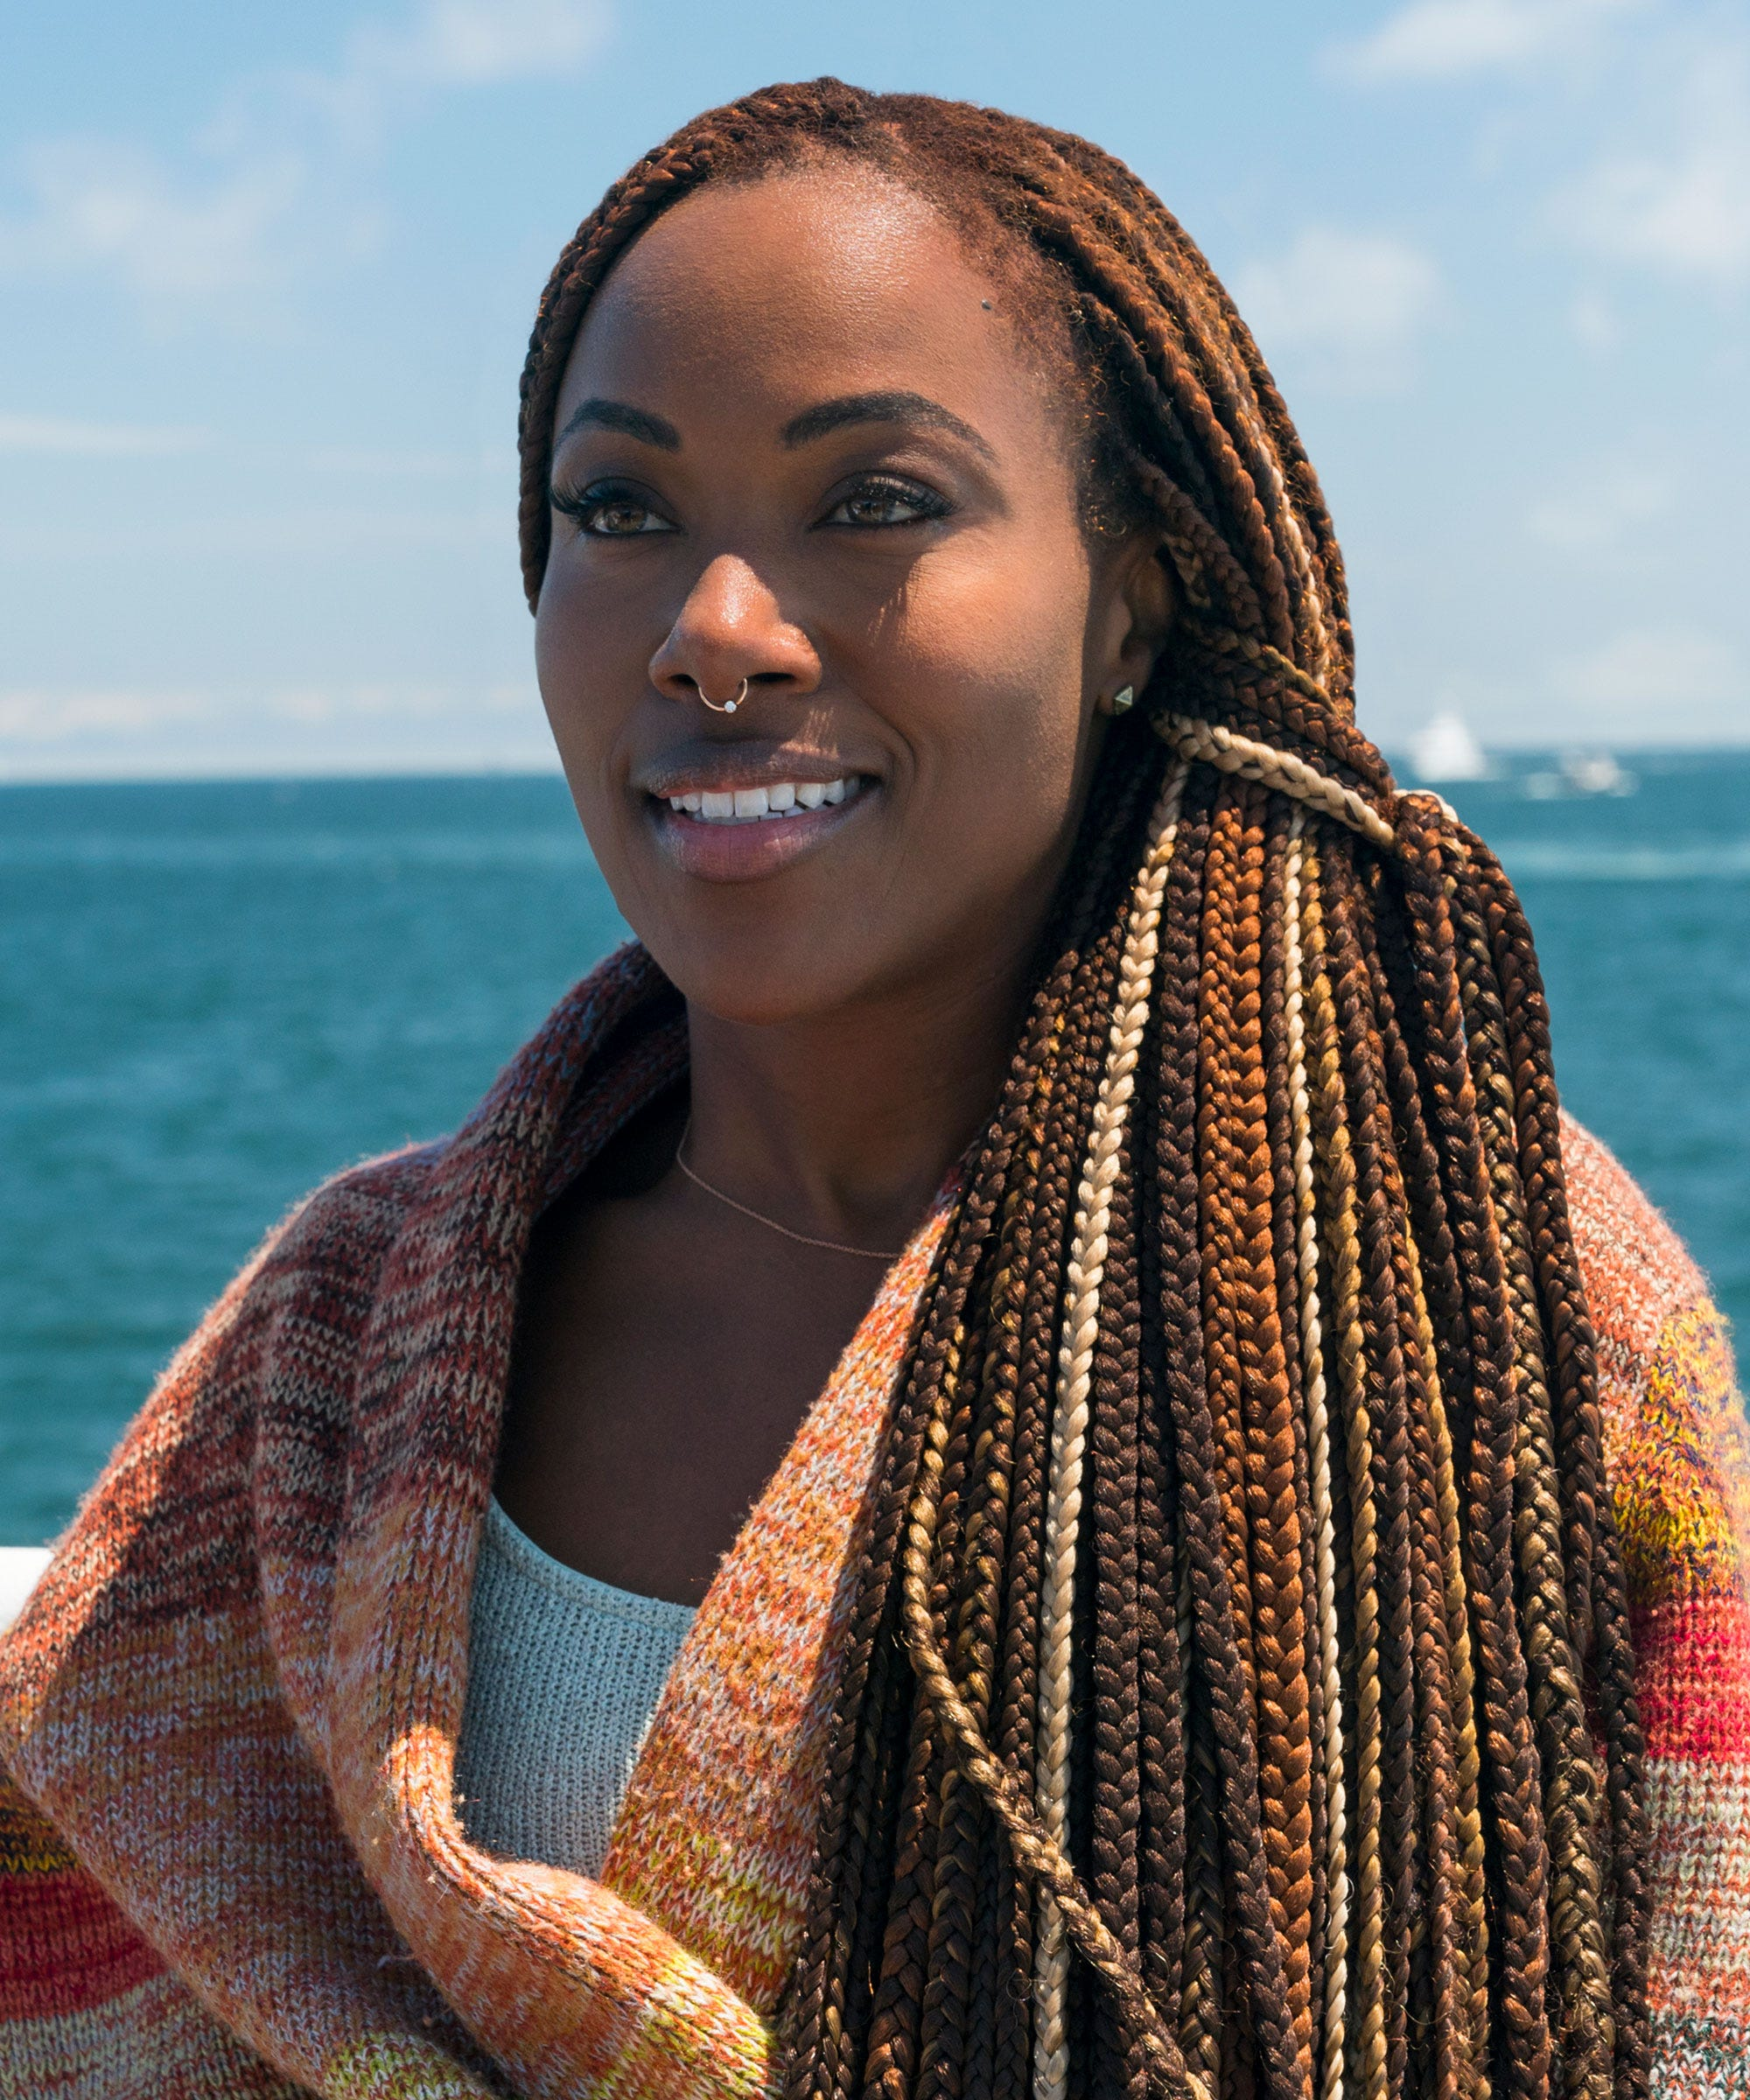 With S2 of She's Gotta Have It On The Way, DeWanda Wise Proves She's Someone Great